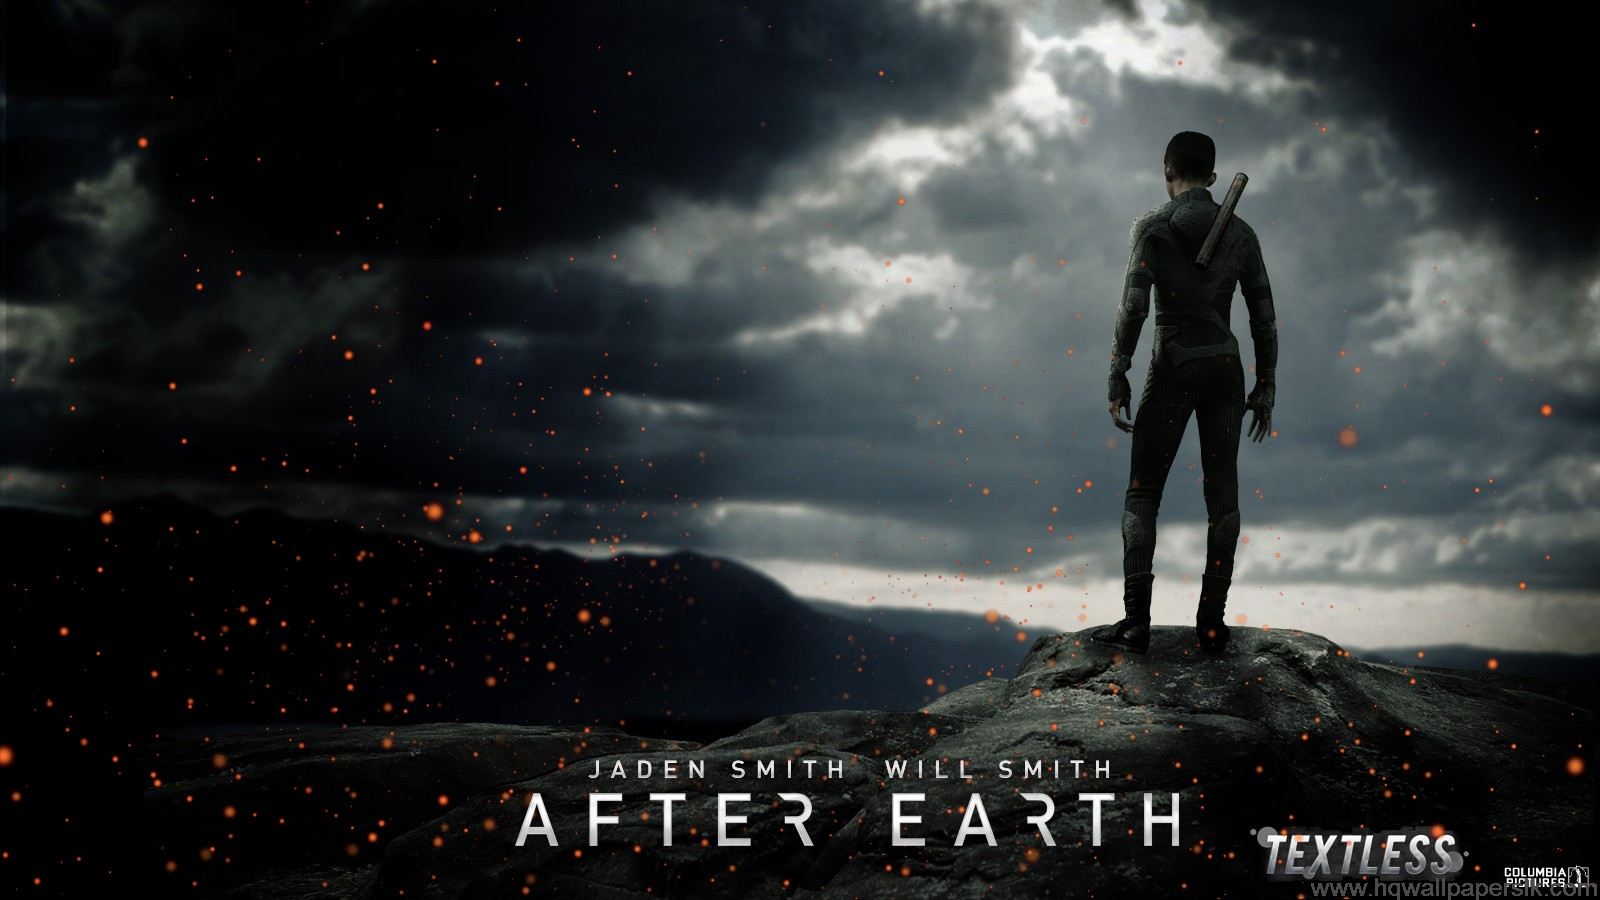 After Earth Movie HD Wallpaper HQ Images Gallery 1600x900